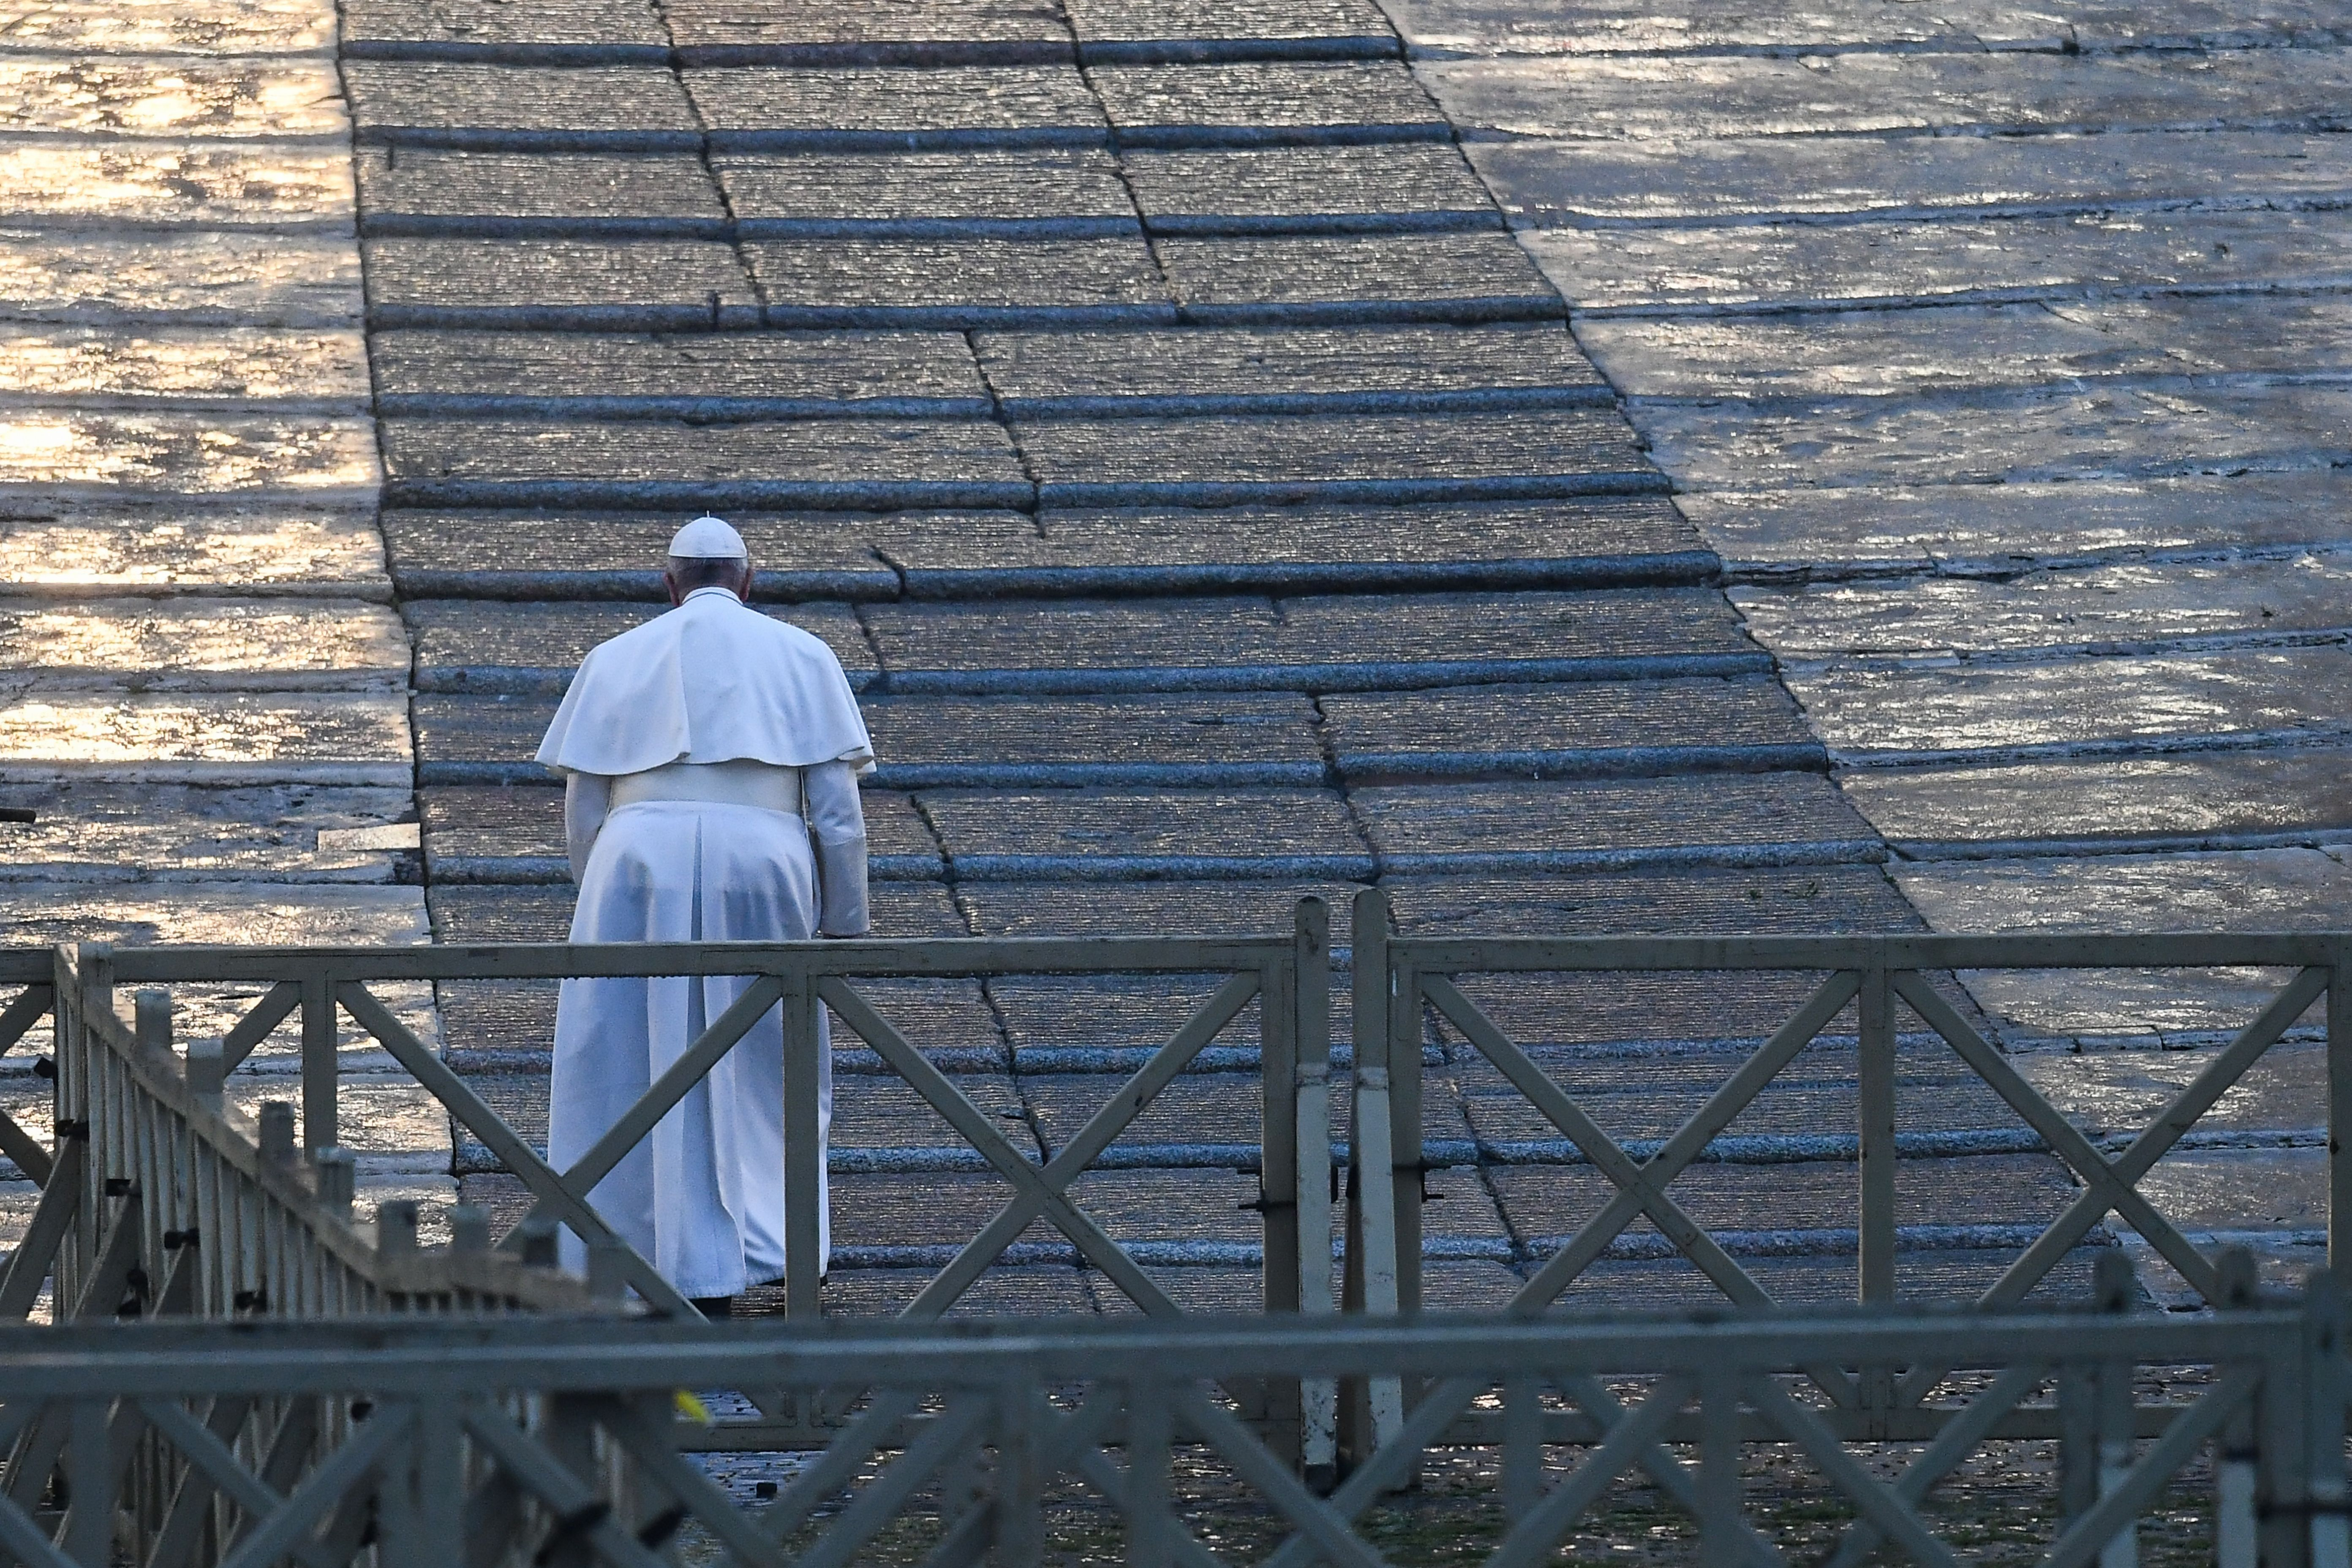 Pope Francis walks towards the platform to preside over a moment of prayer on the sagrato of St Peters Basilica. (Photo by VINCENZO PINTO/AFP via Getty Images)